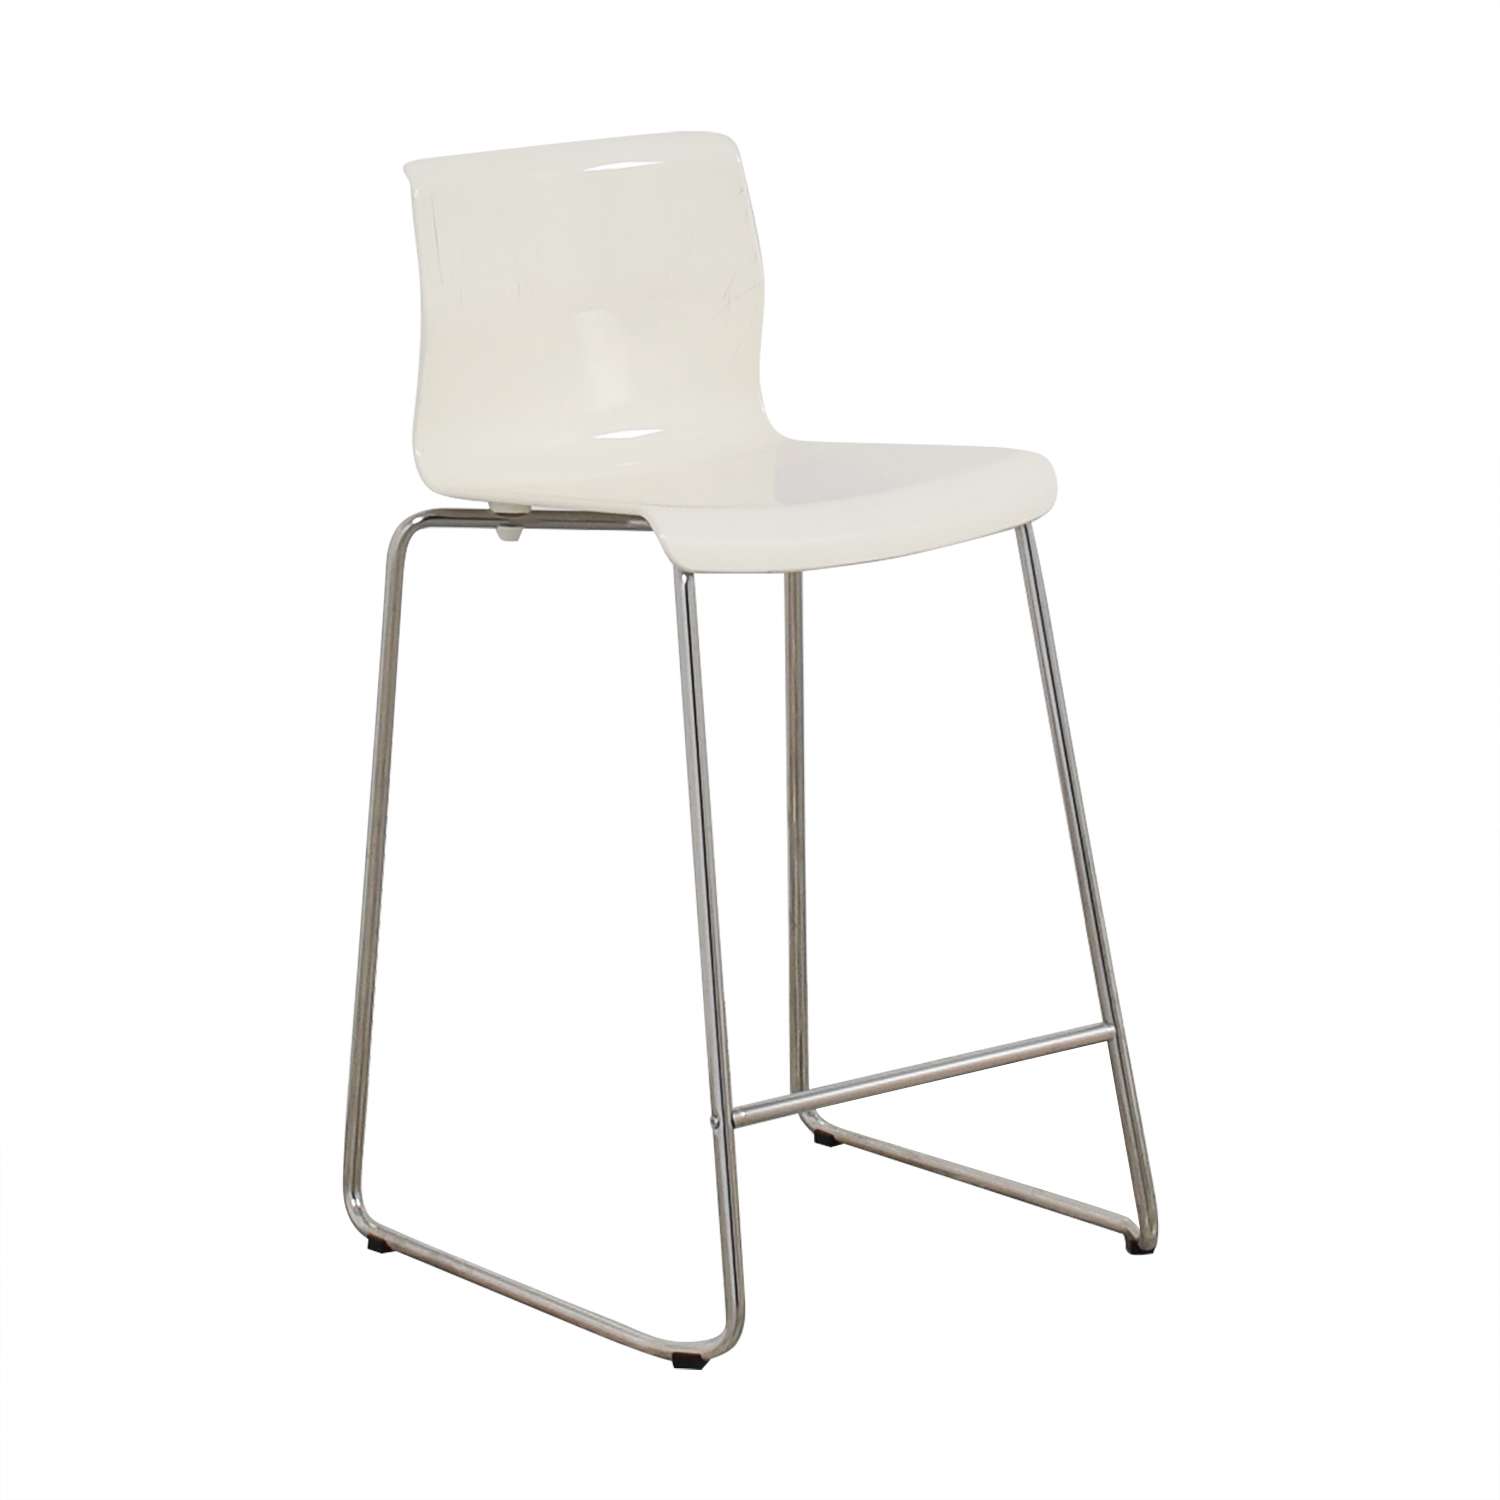 stool chair second hand round kitchen table with 6 chairs 90 off ikea glenn white used dimensions